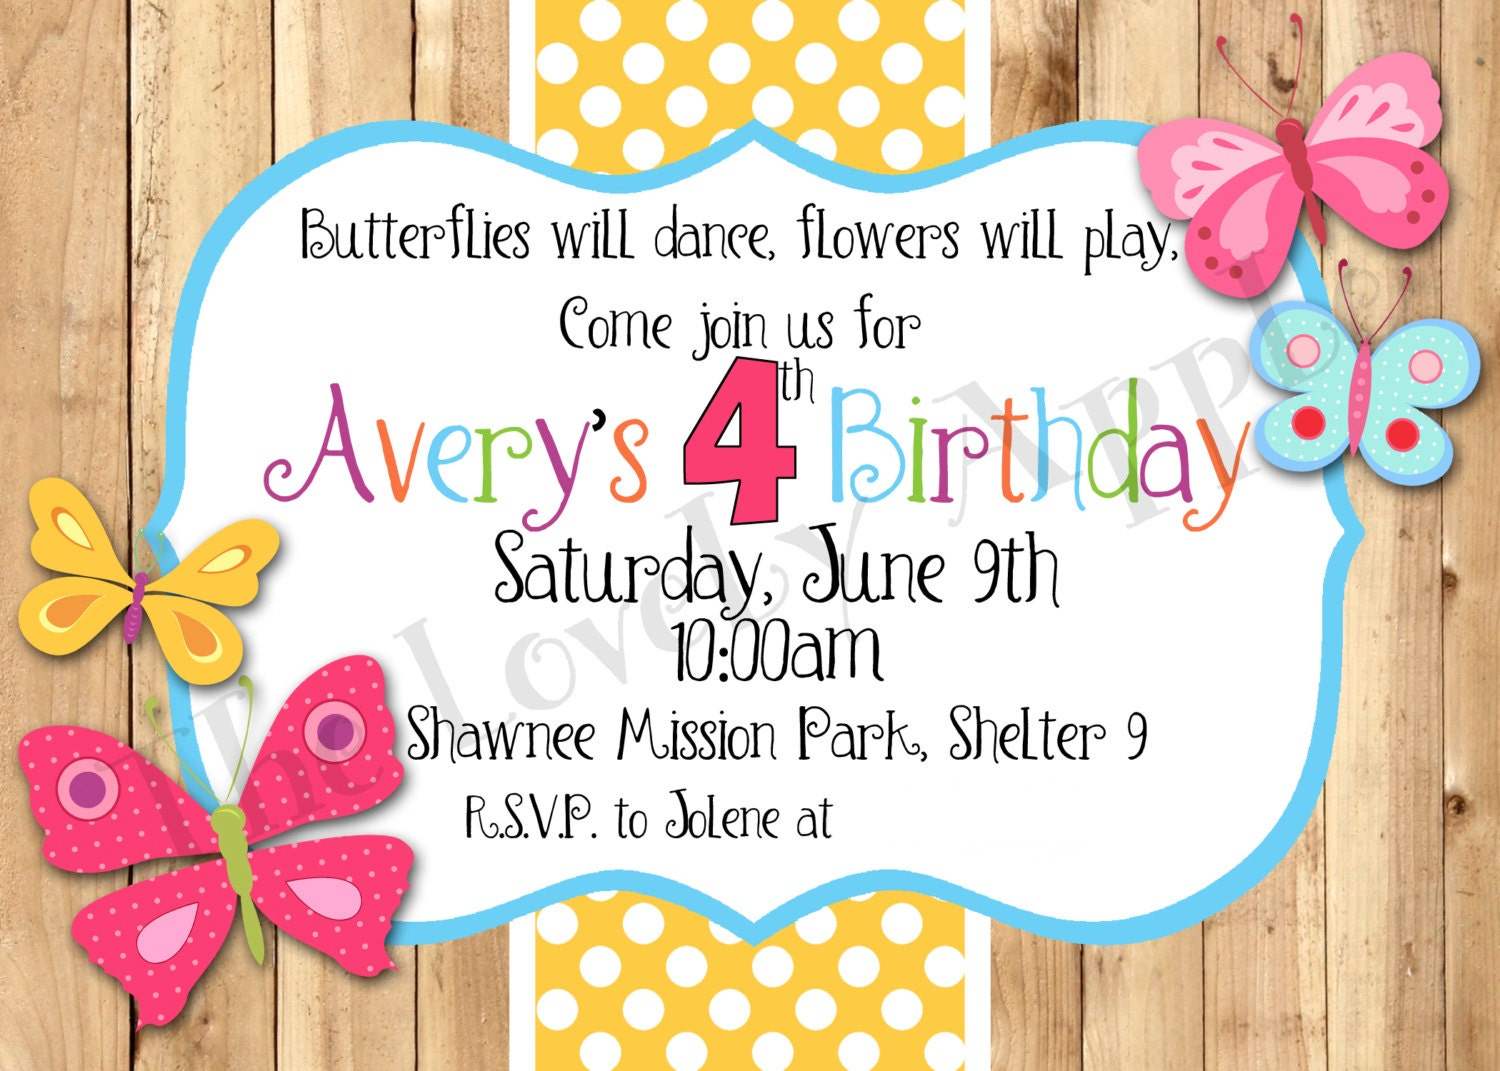 Birthday Invitation Templates Etsy. Il_570xN.371415096_paij. Request A  Custom Order And Have Something Made Just For You.  Birthday Invitation Word Template